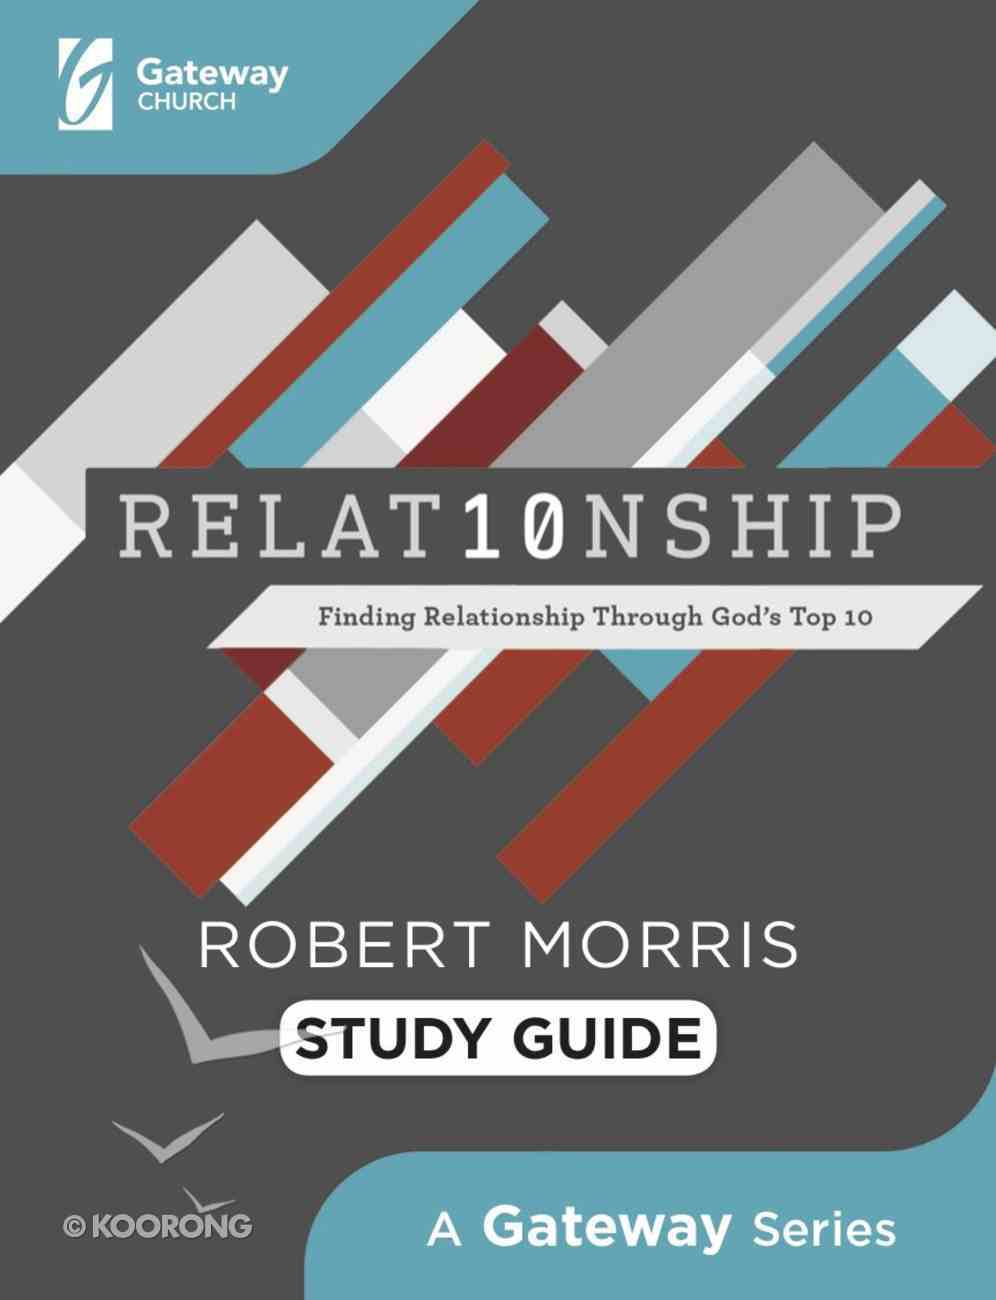 Relat10nship: Finding Relationship Through God's Top 10 (Study Guide) Paperback